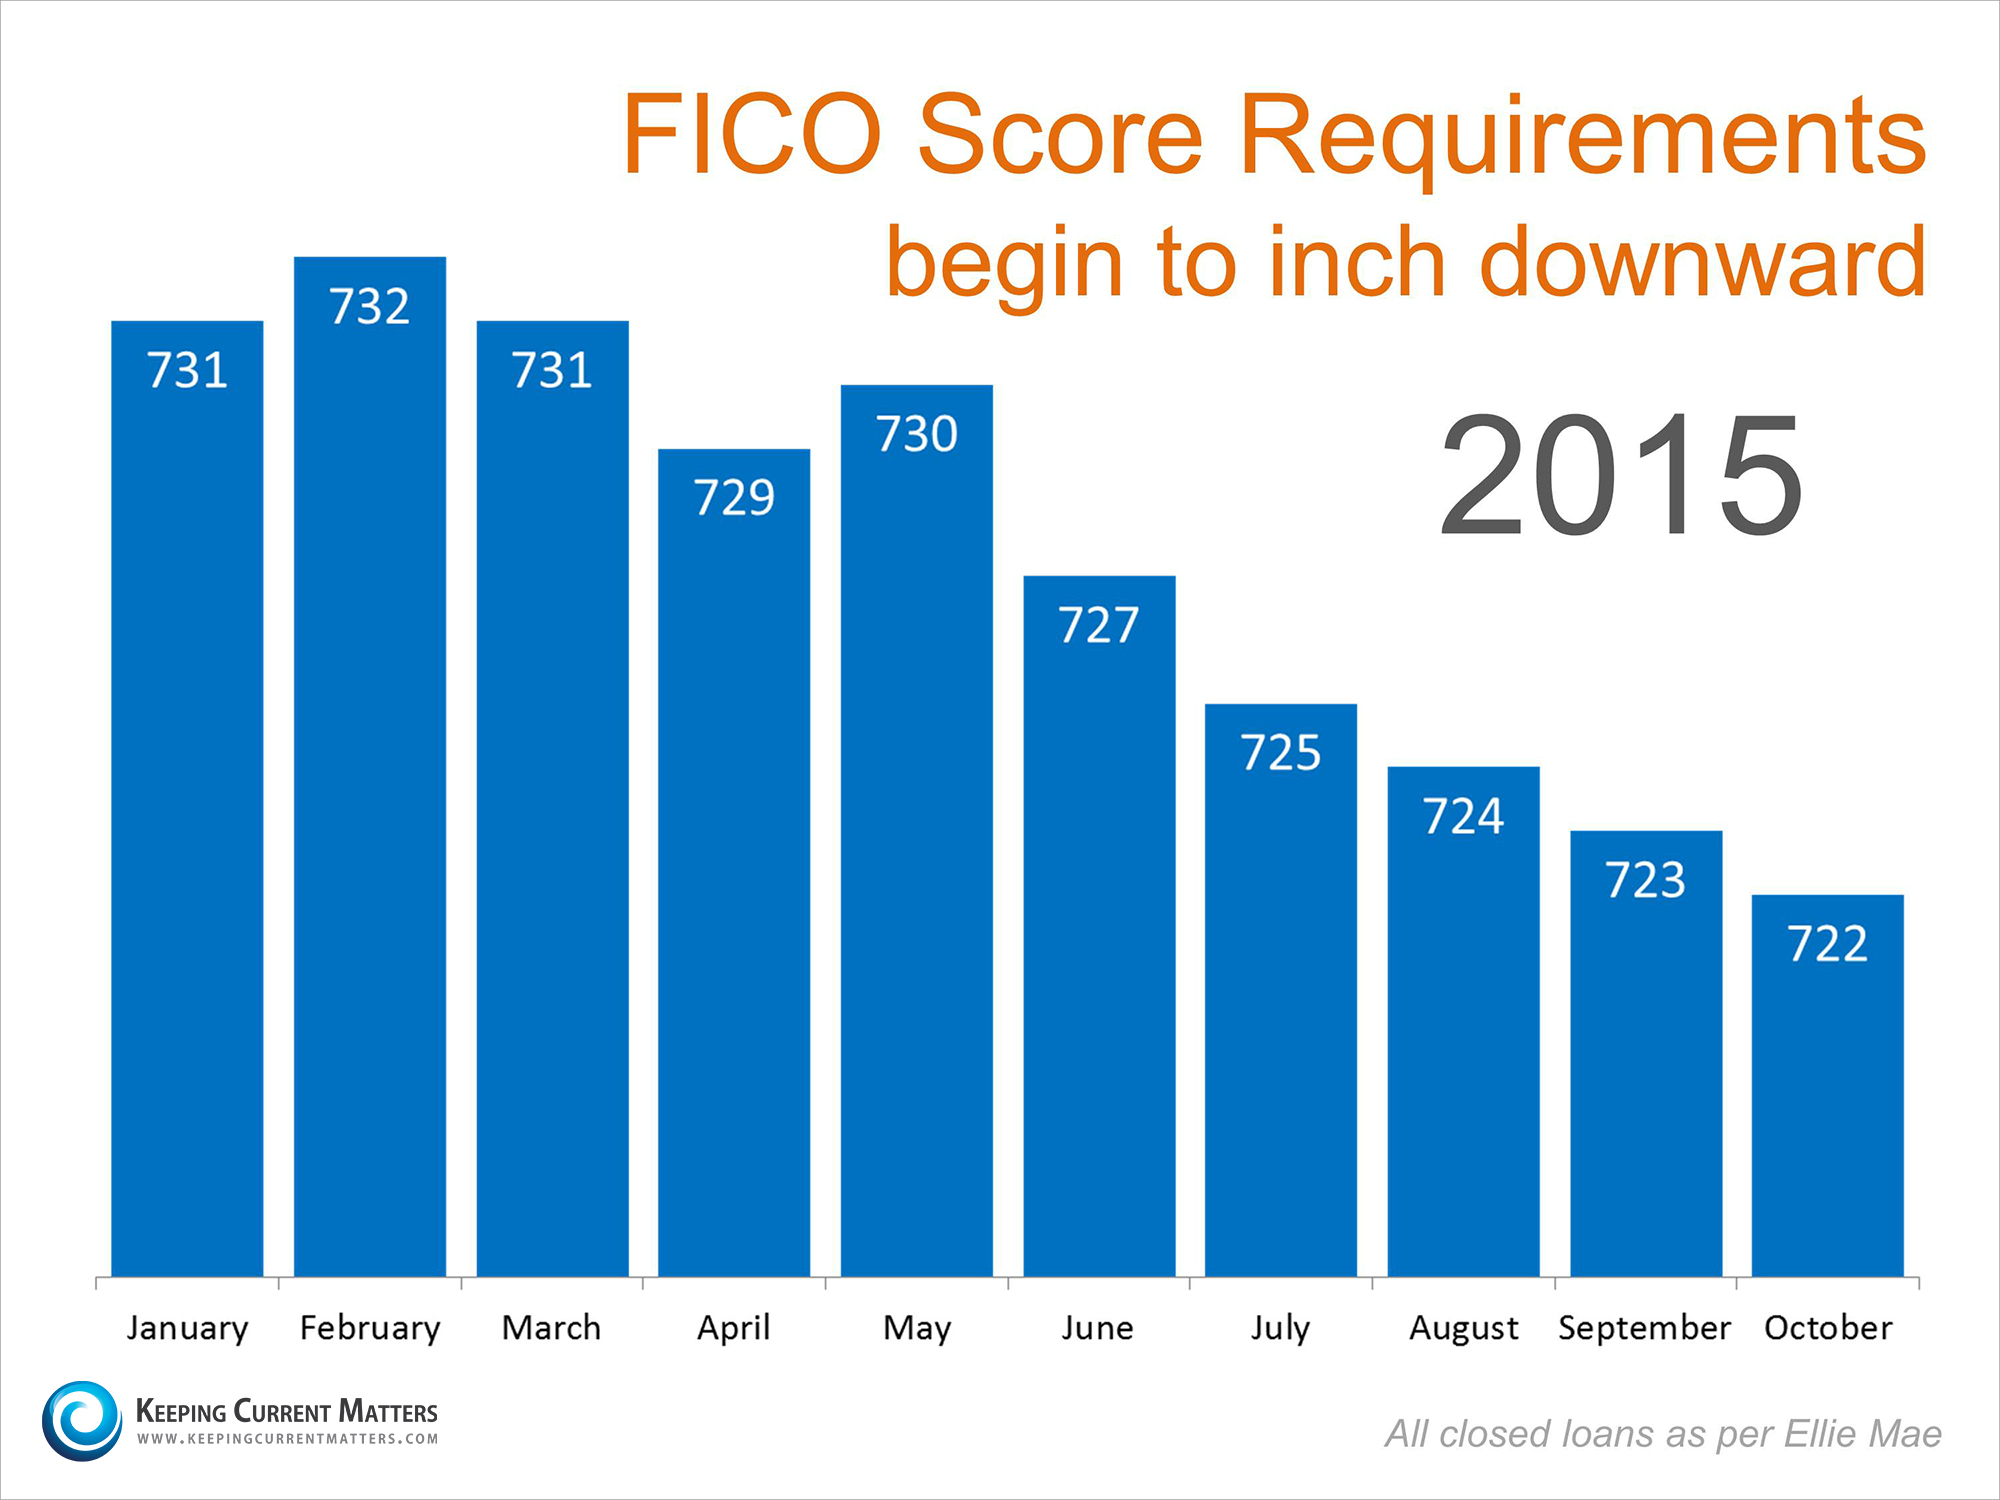 keeping current matters | millennials: what fico score is needed